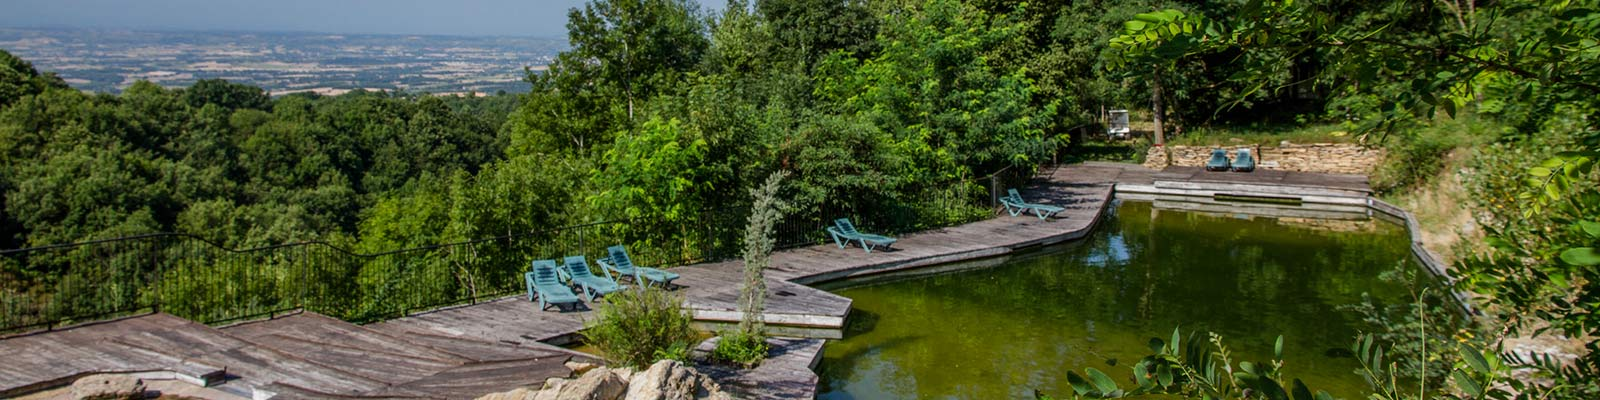 camping nature cathare